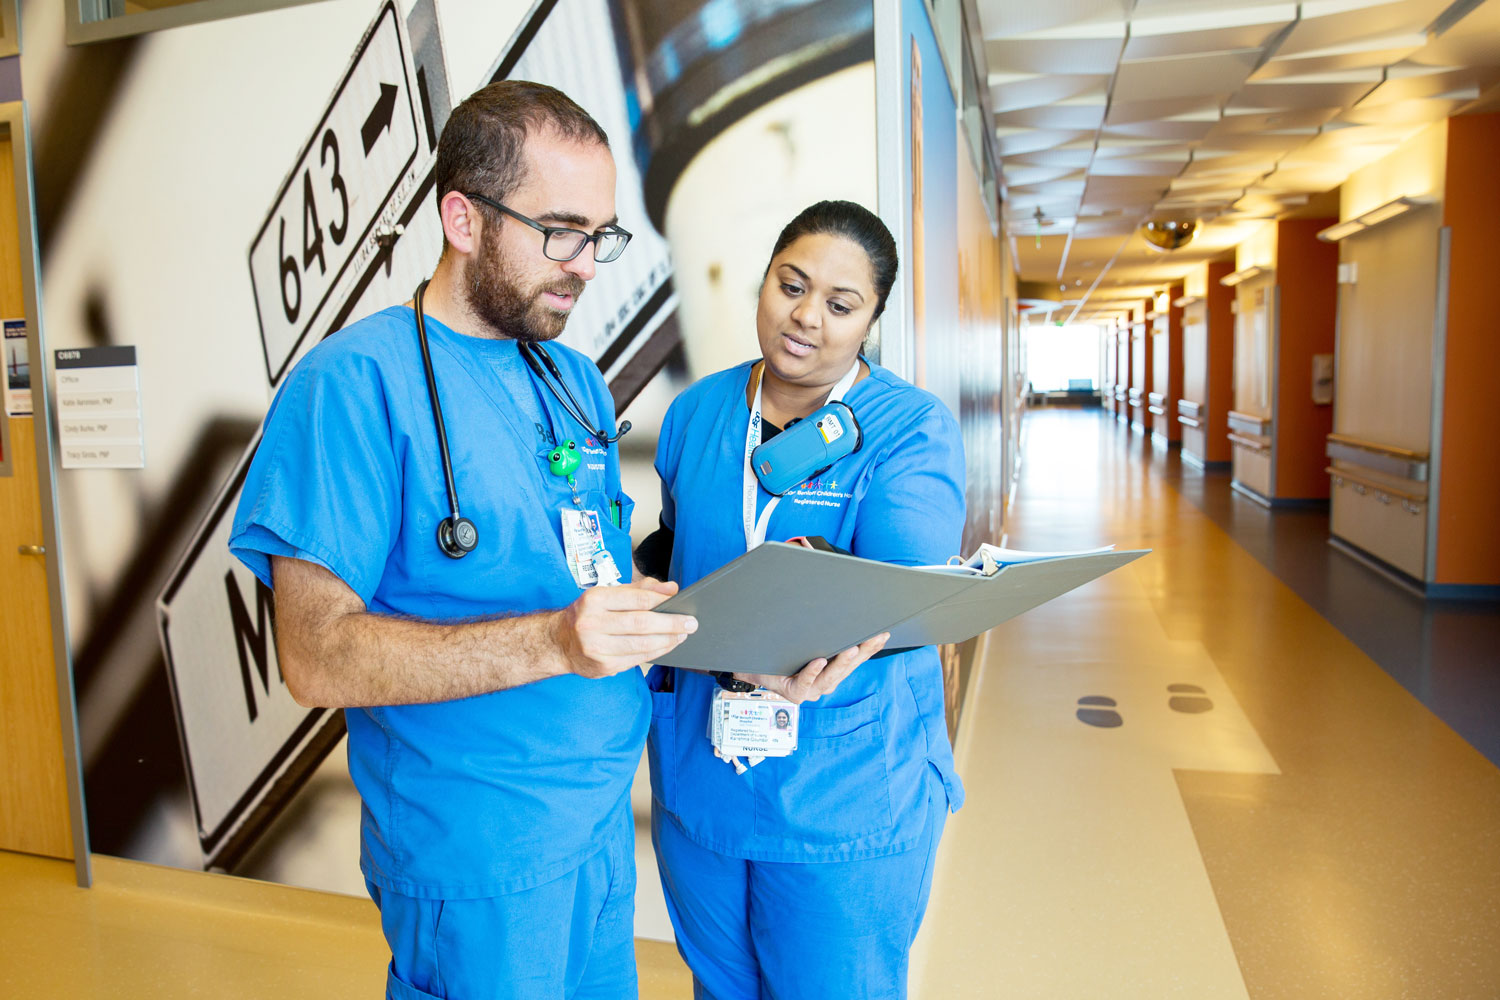 2 UCSF nurses talk in a hospital hallway